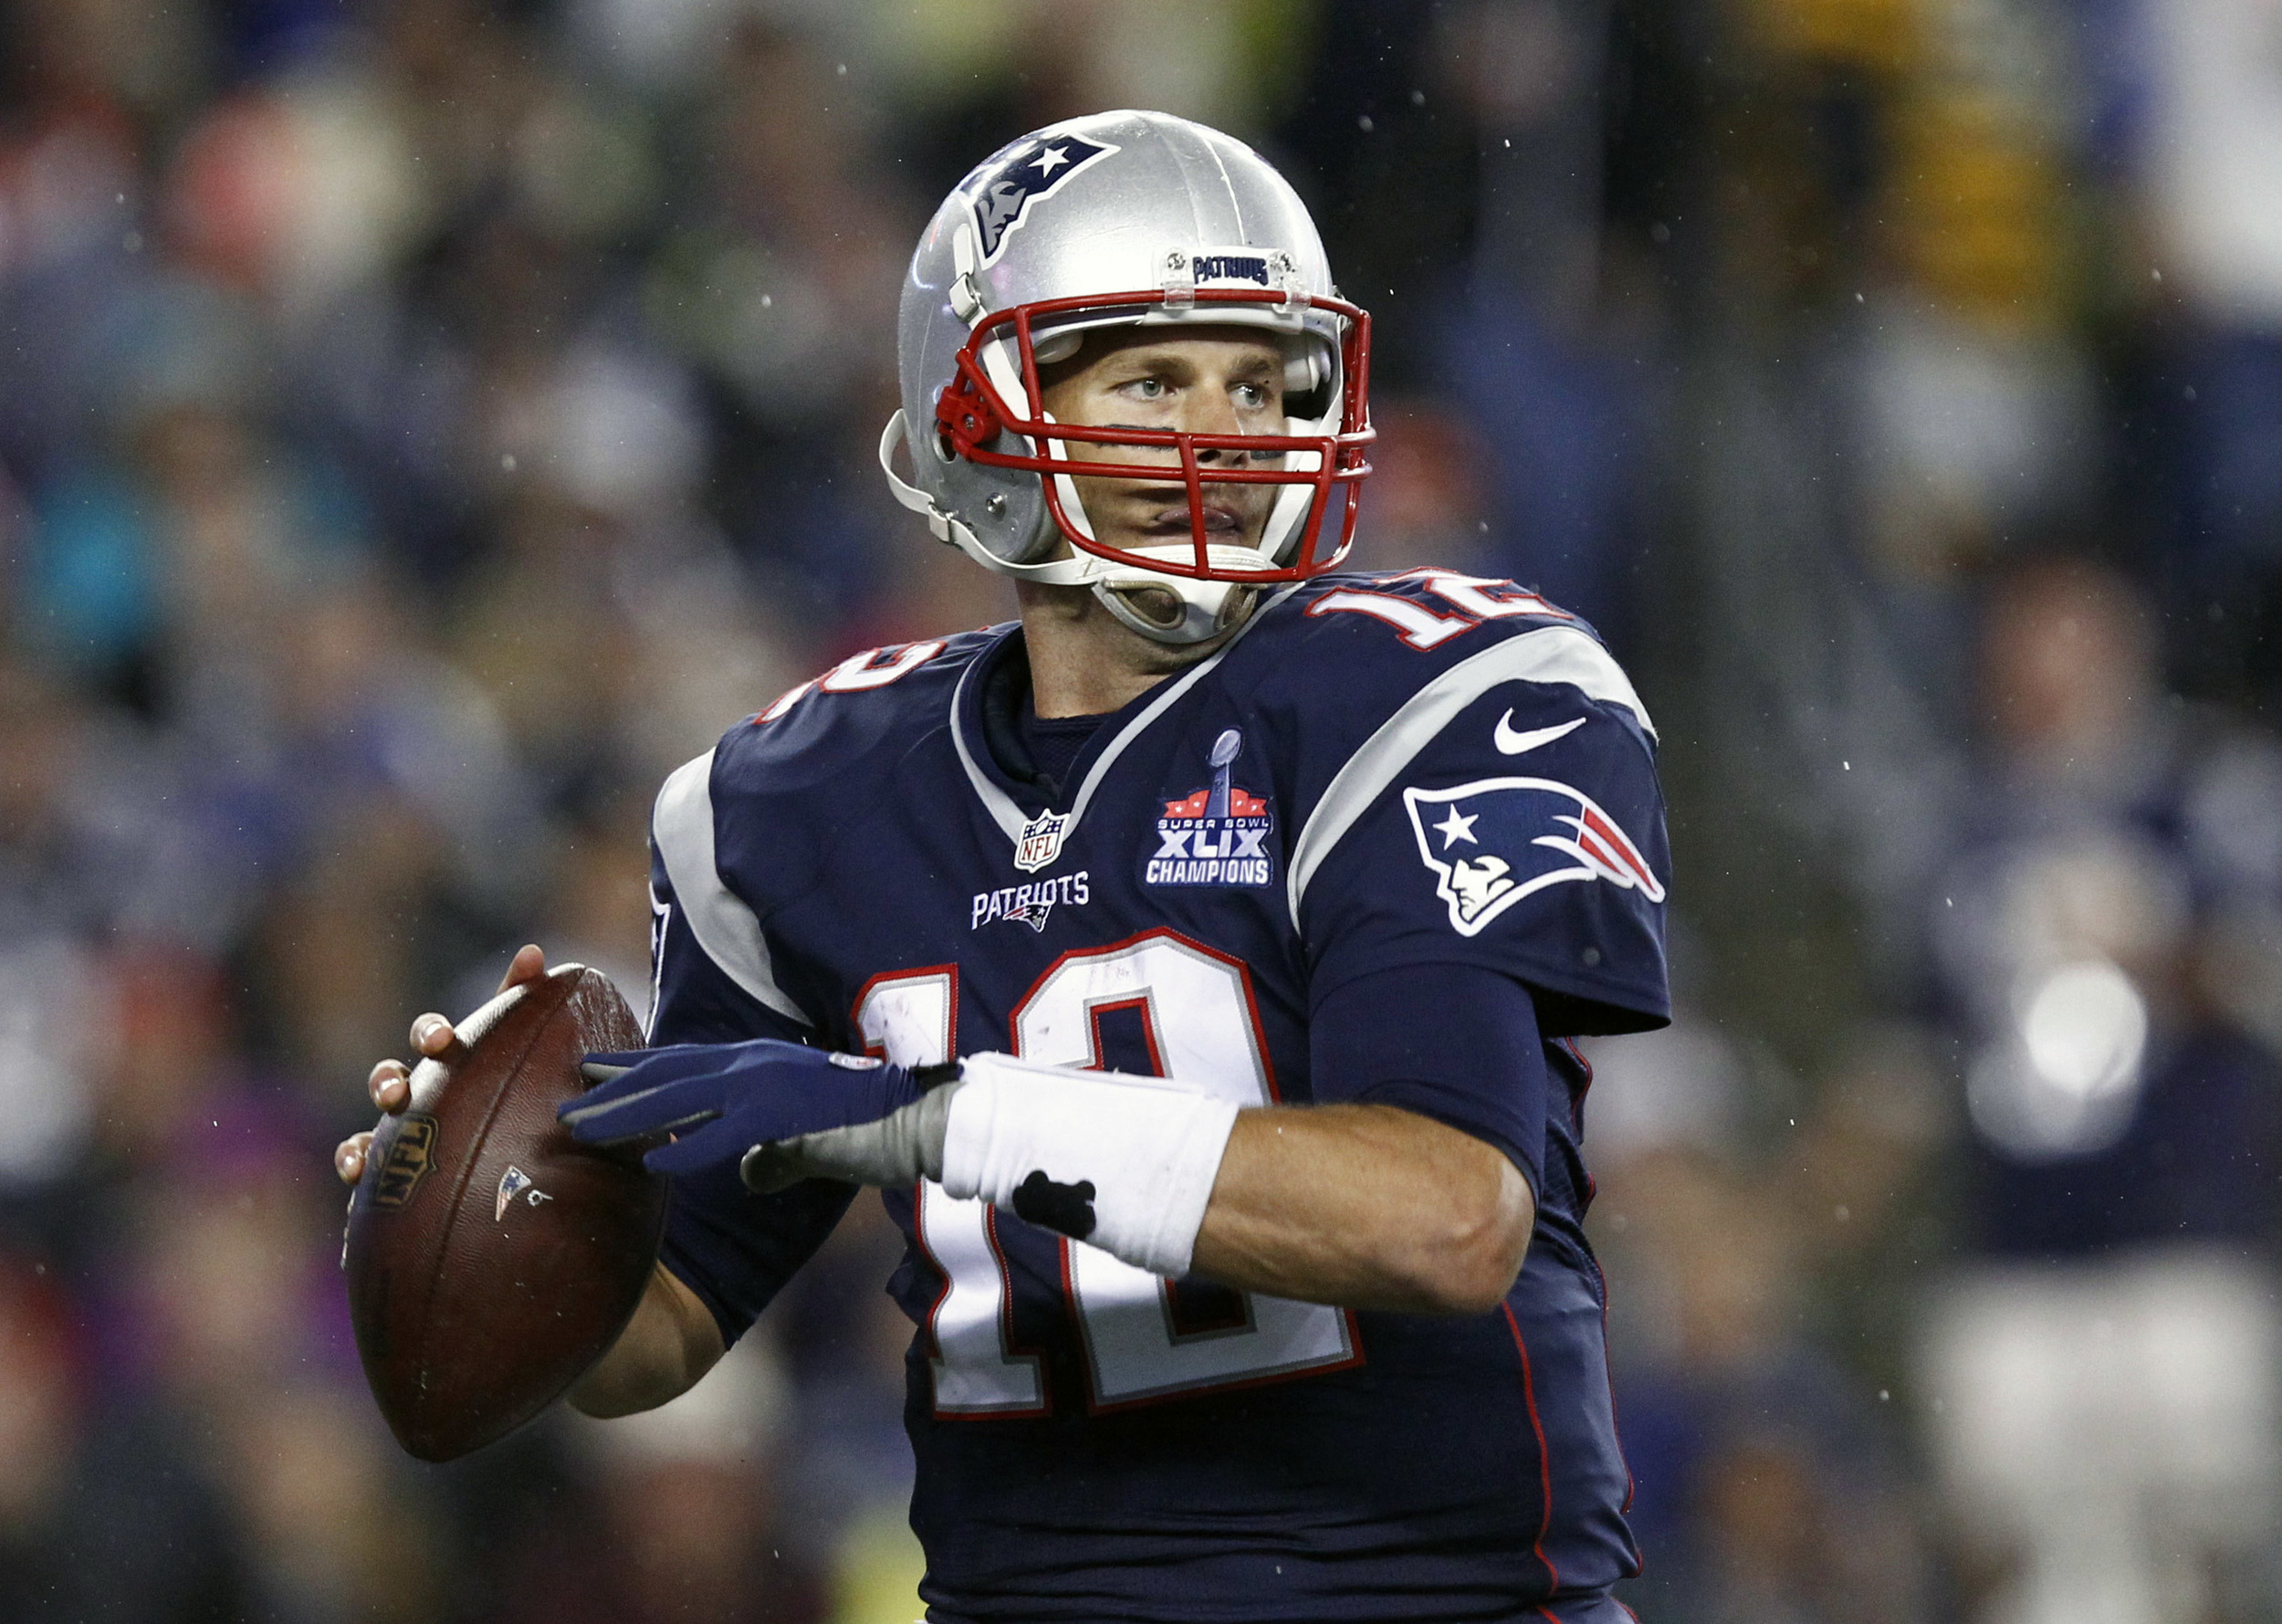 New England Patriots quarterback Tom Brady (12) throws the ball against the Pittsburgh Steelers in the opening game of the 2015 National Football League season. The NFL are strong supporters of using technology to help athletes and coaches make important decisions on the field and improve performance. Image supplied by Acti  on Images/Mark L. Baer